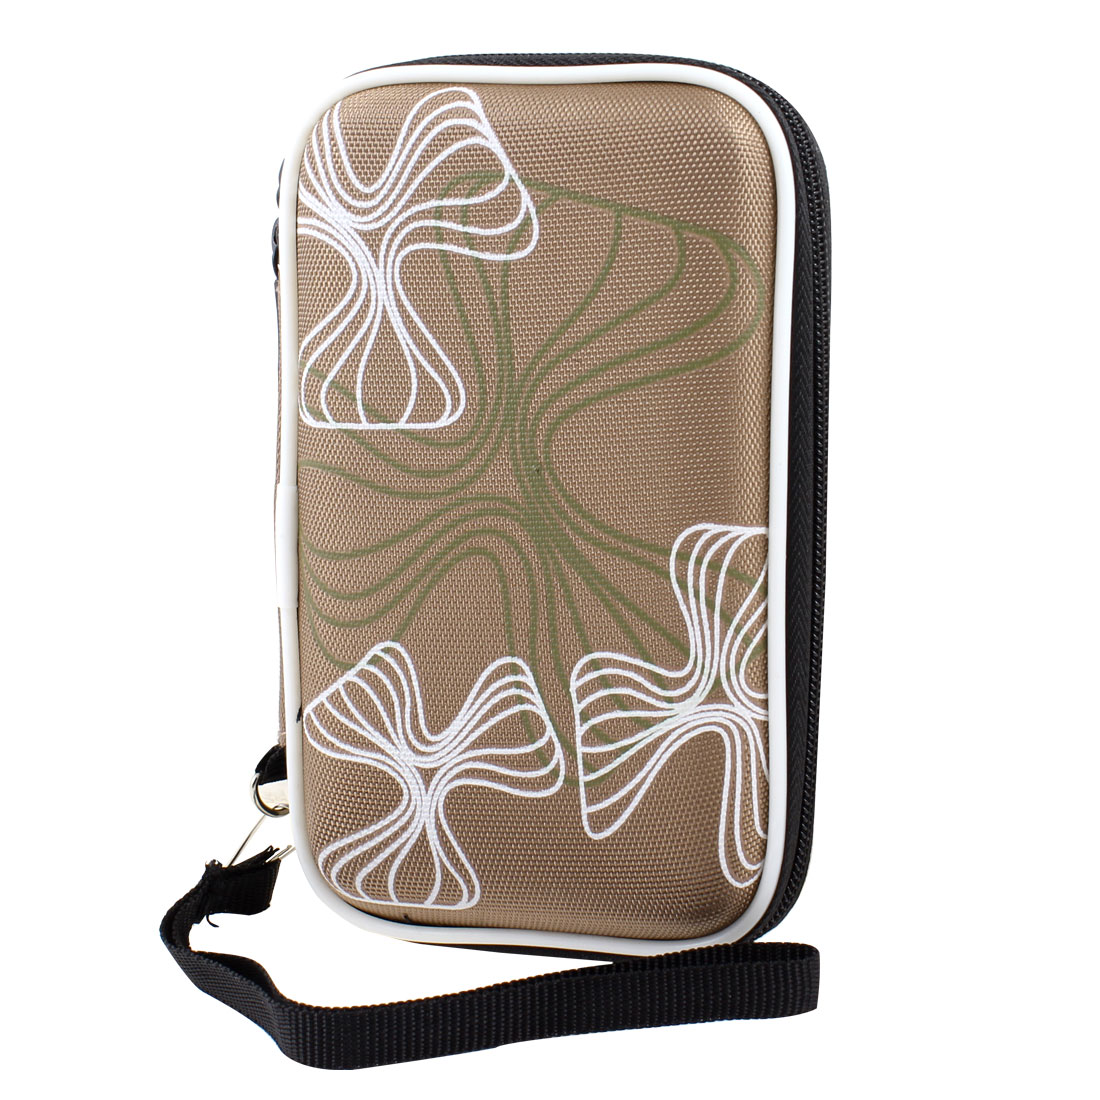 "Unique Bargains Khaki Carrying Case Cover Bag Pouch Zip-up Wallet for 2.5"" Hard Drive Disk"